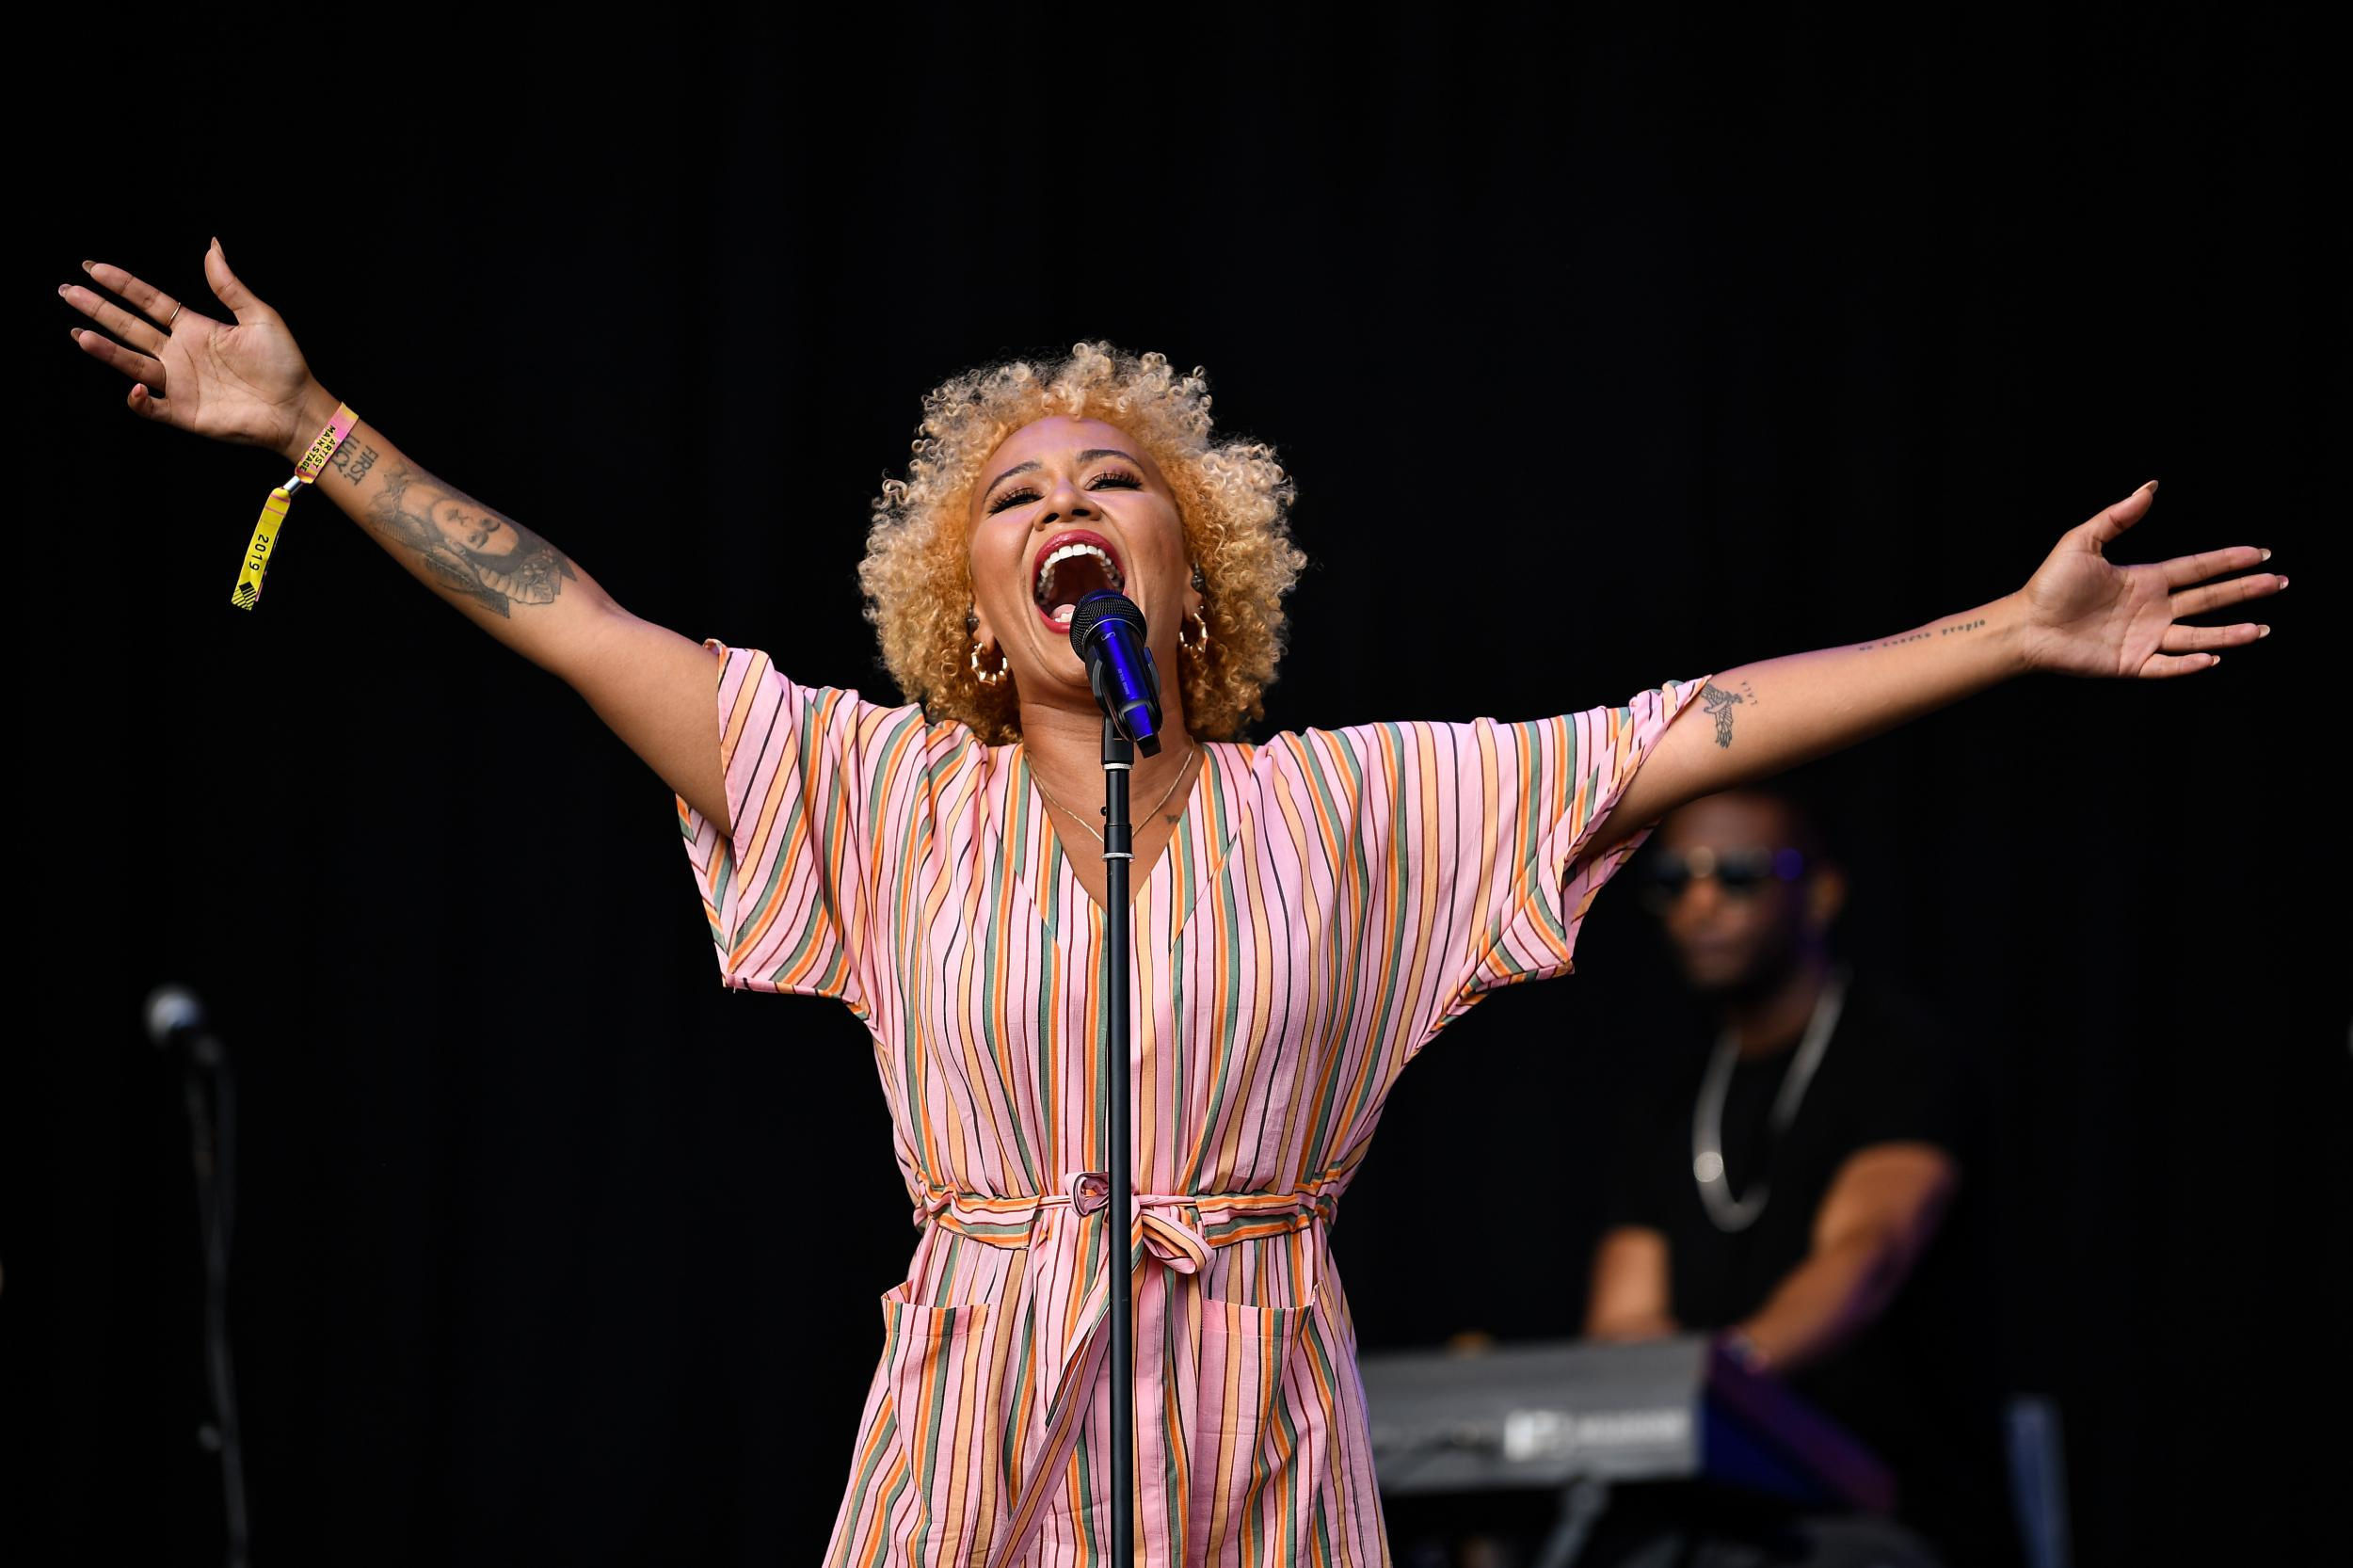 Emeli Sandé pulls out of Radio 2 Live in Hyde Park show at last minute after losing voice